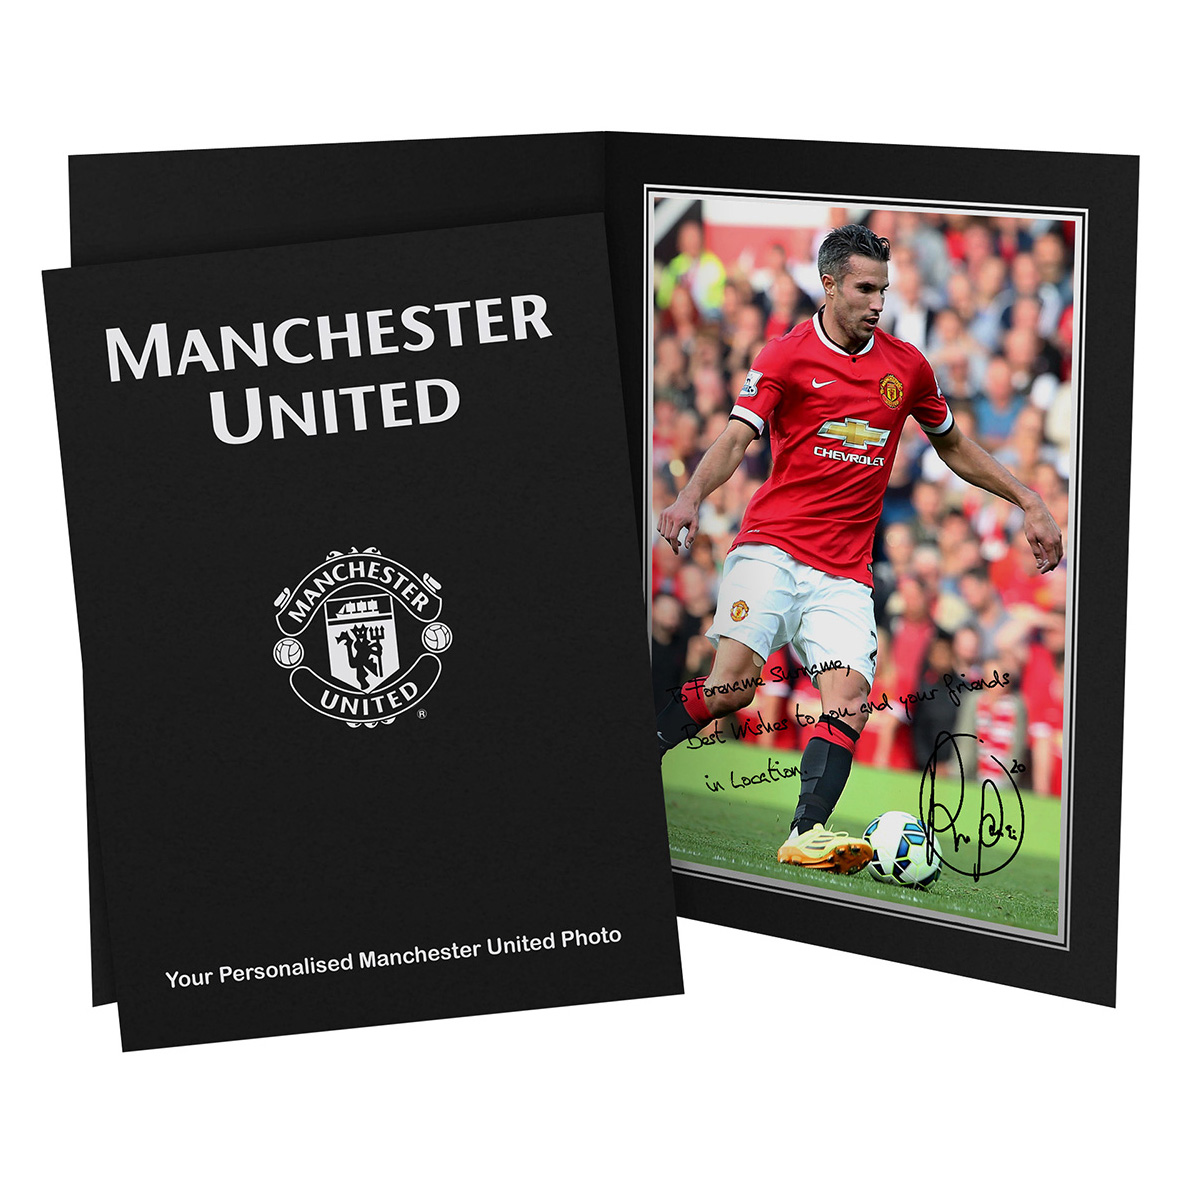 Manchester United Personalised Signature Photo in Presentation Folder - Van Persie